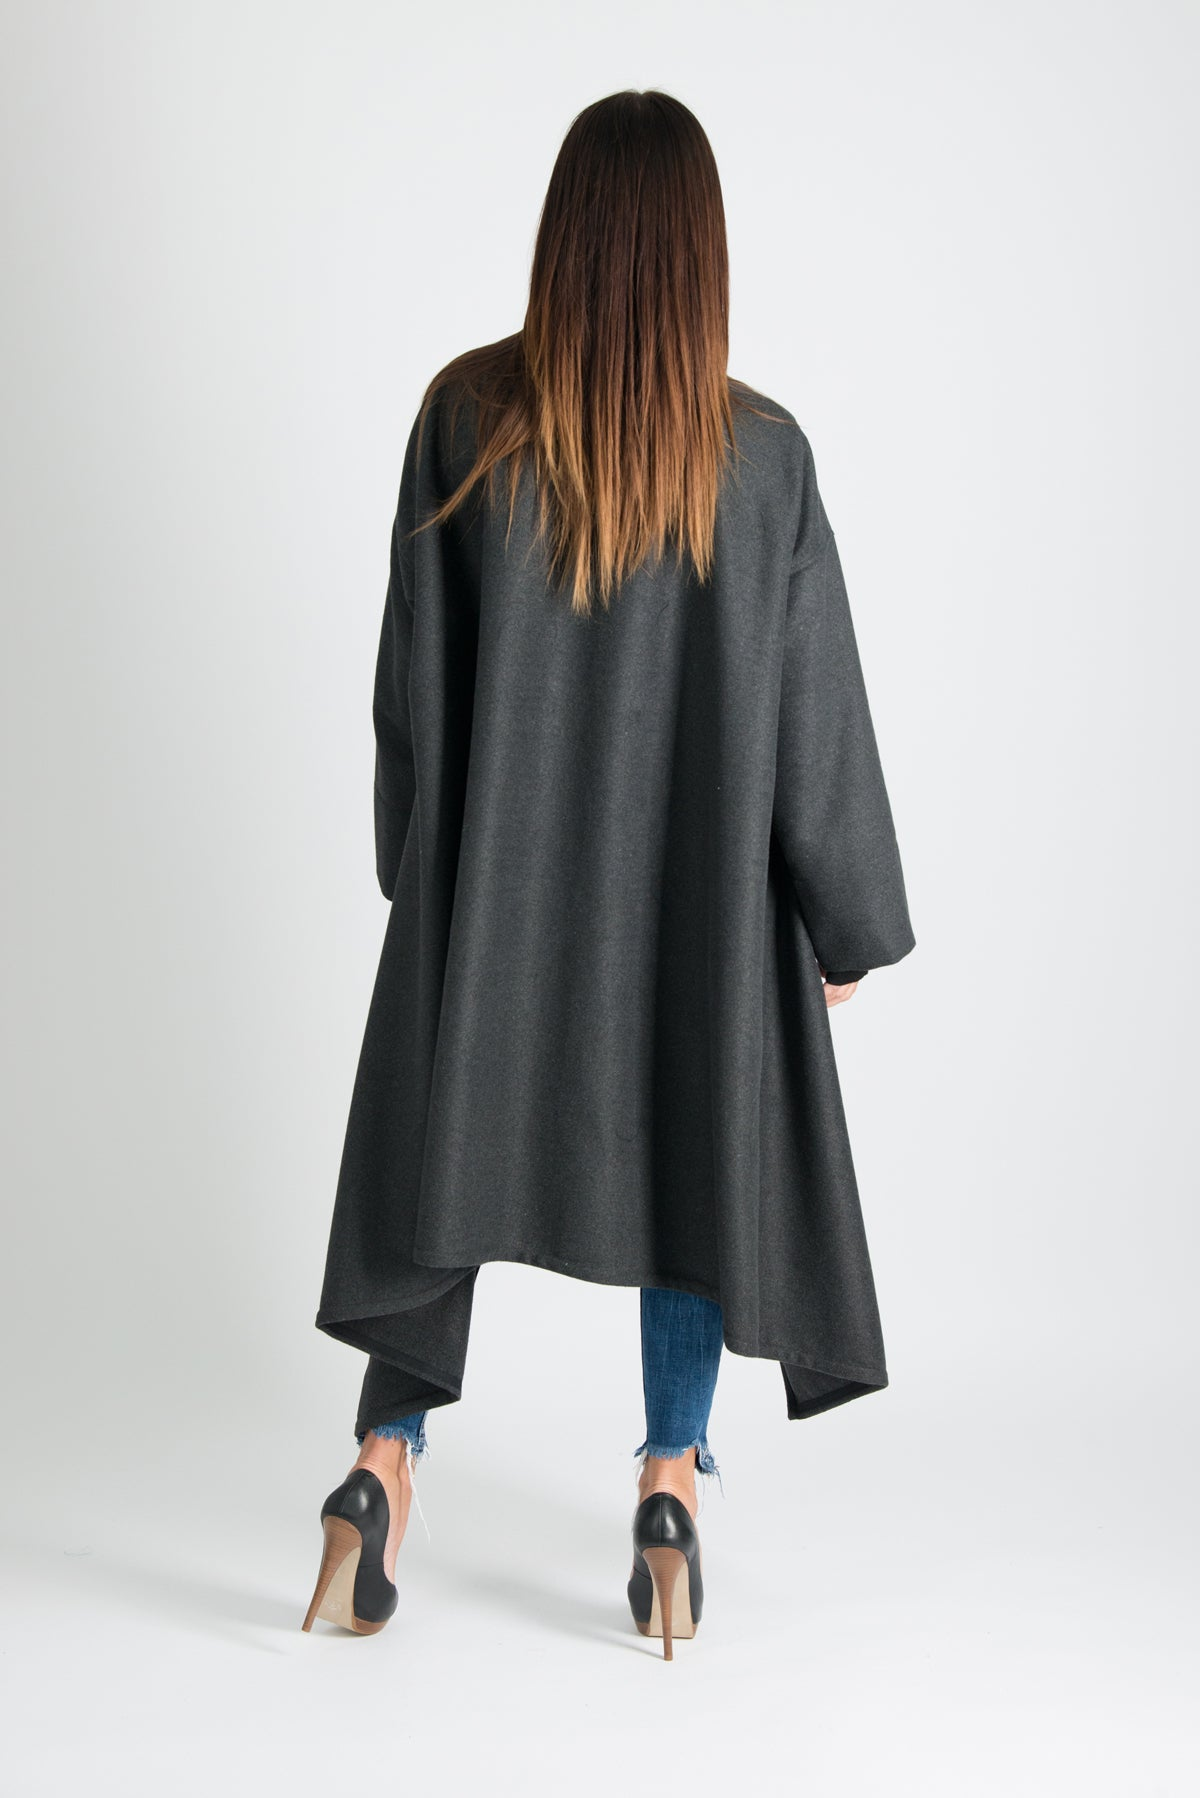 Dark grey Winter women Coat, Cashmere Coat, Autumn Coat with Loose Line